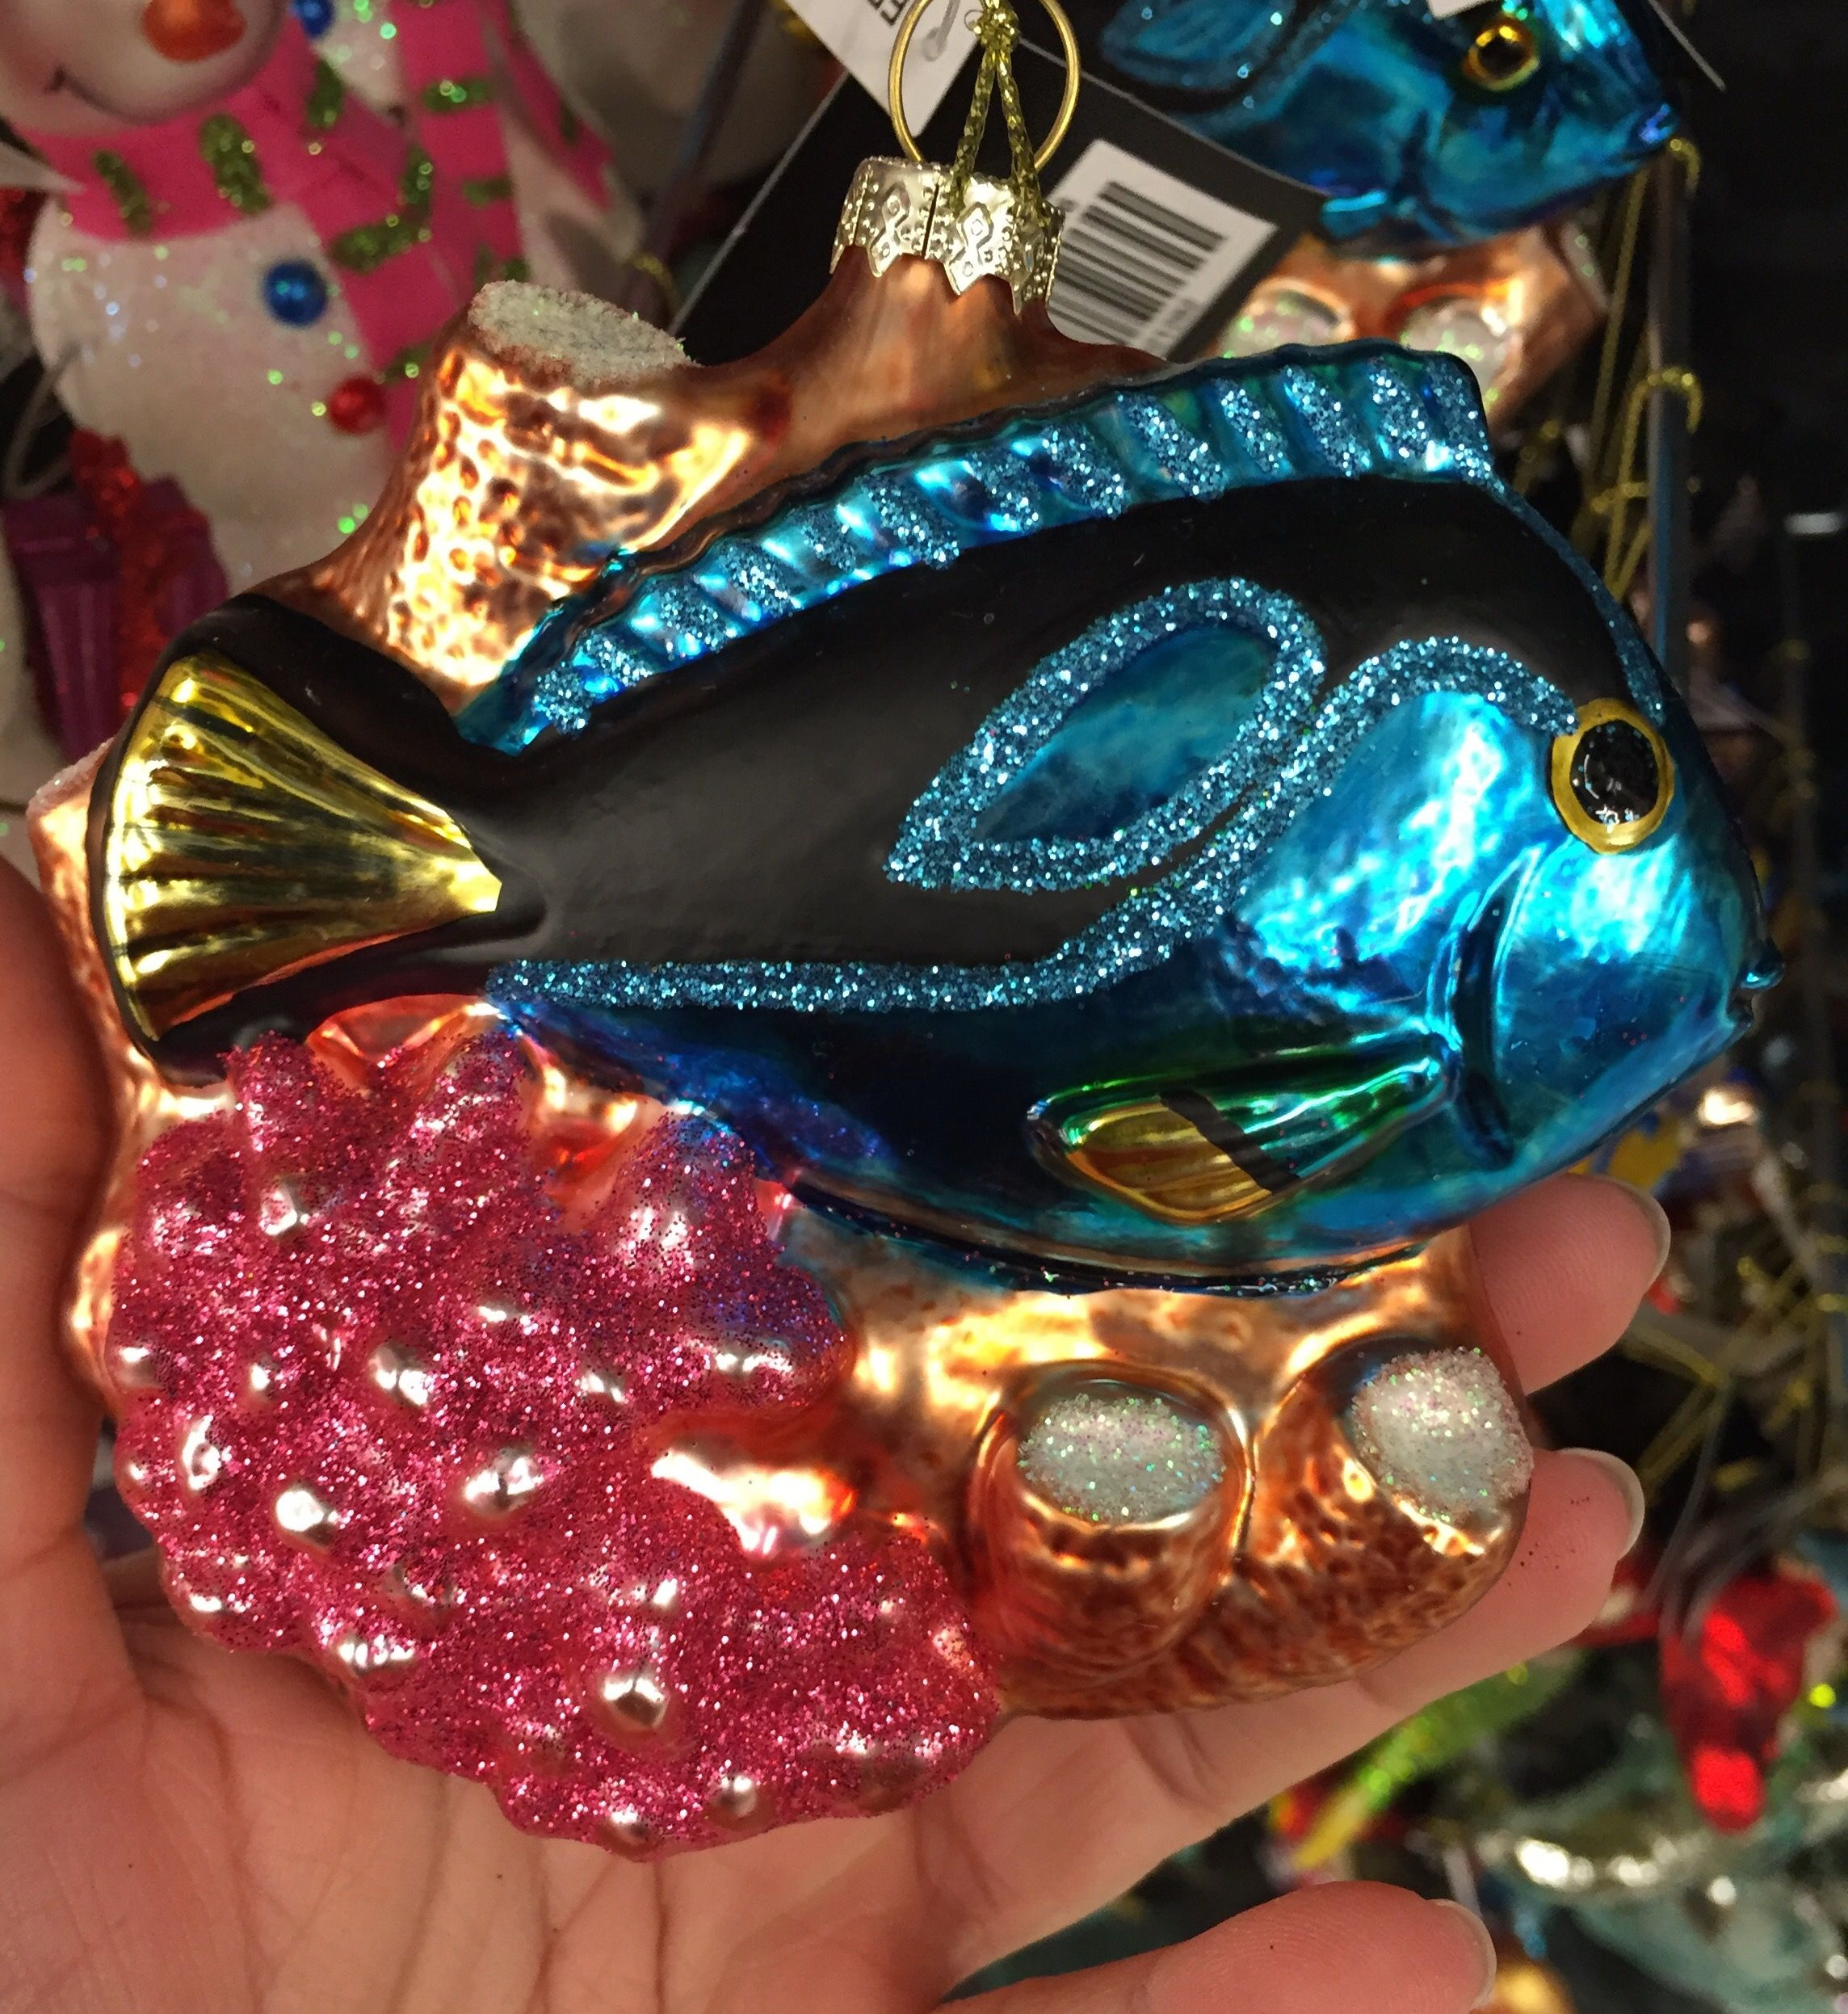 Hobby lobby glass ornaments - Robert Stanley Home Collection Glass Tropical Fish And Coral Ornament 9 99 At Hobby Lobby